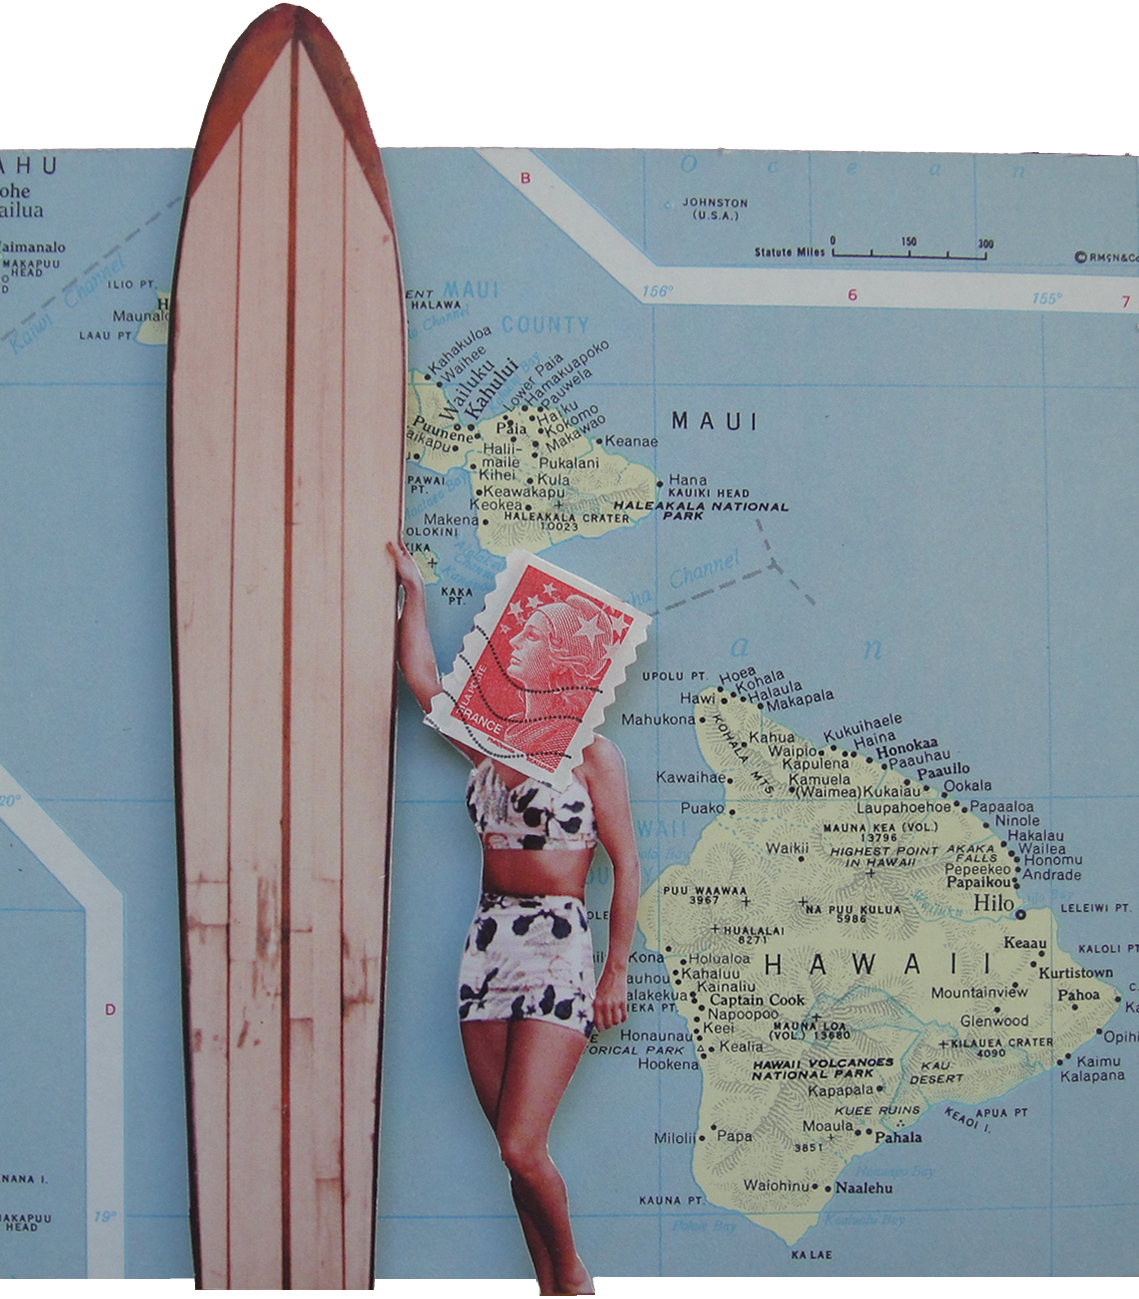 Collage made from postage stamps, magazine/book clippings and vintage maps: The Endless Summer (2014)